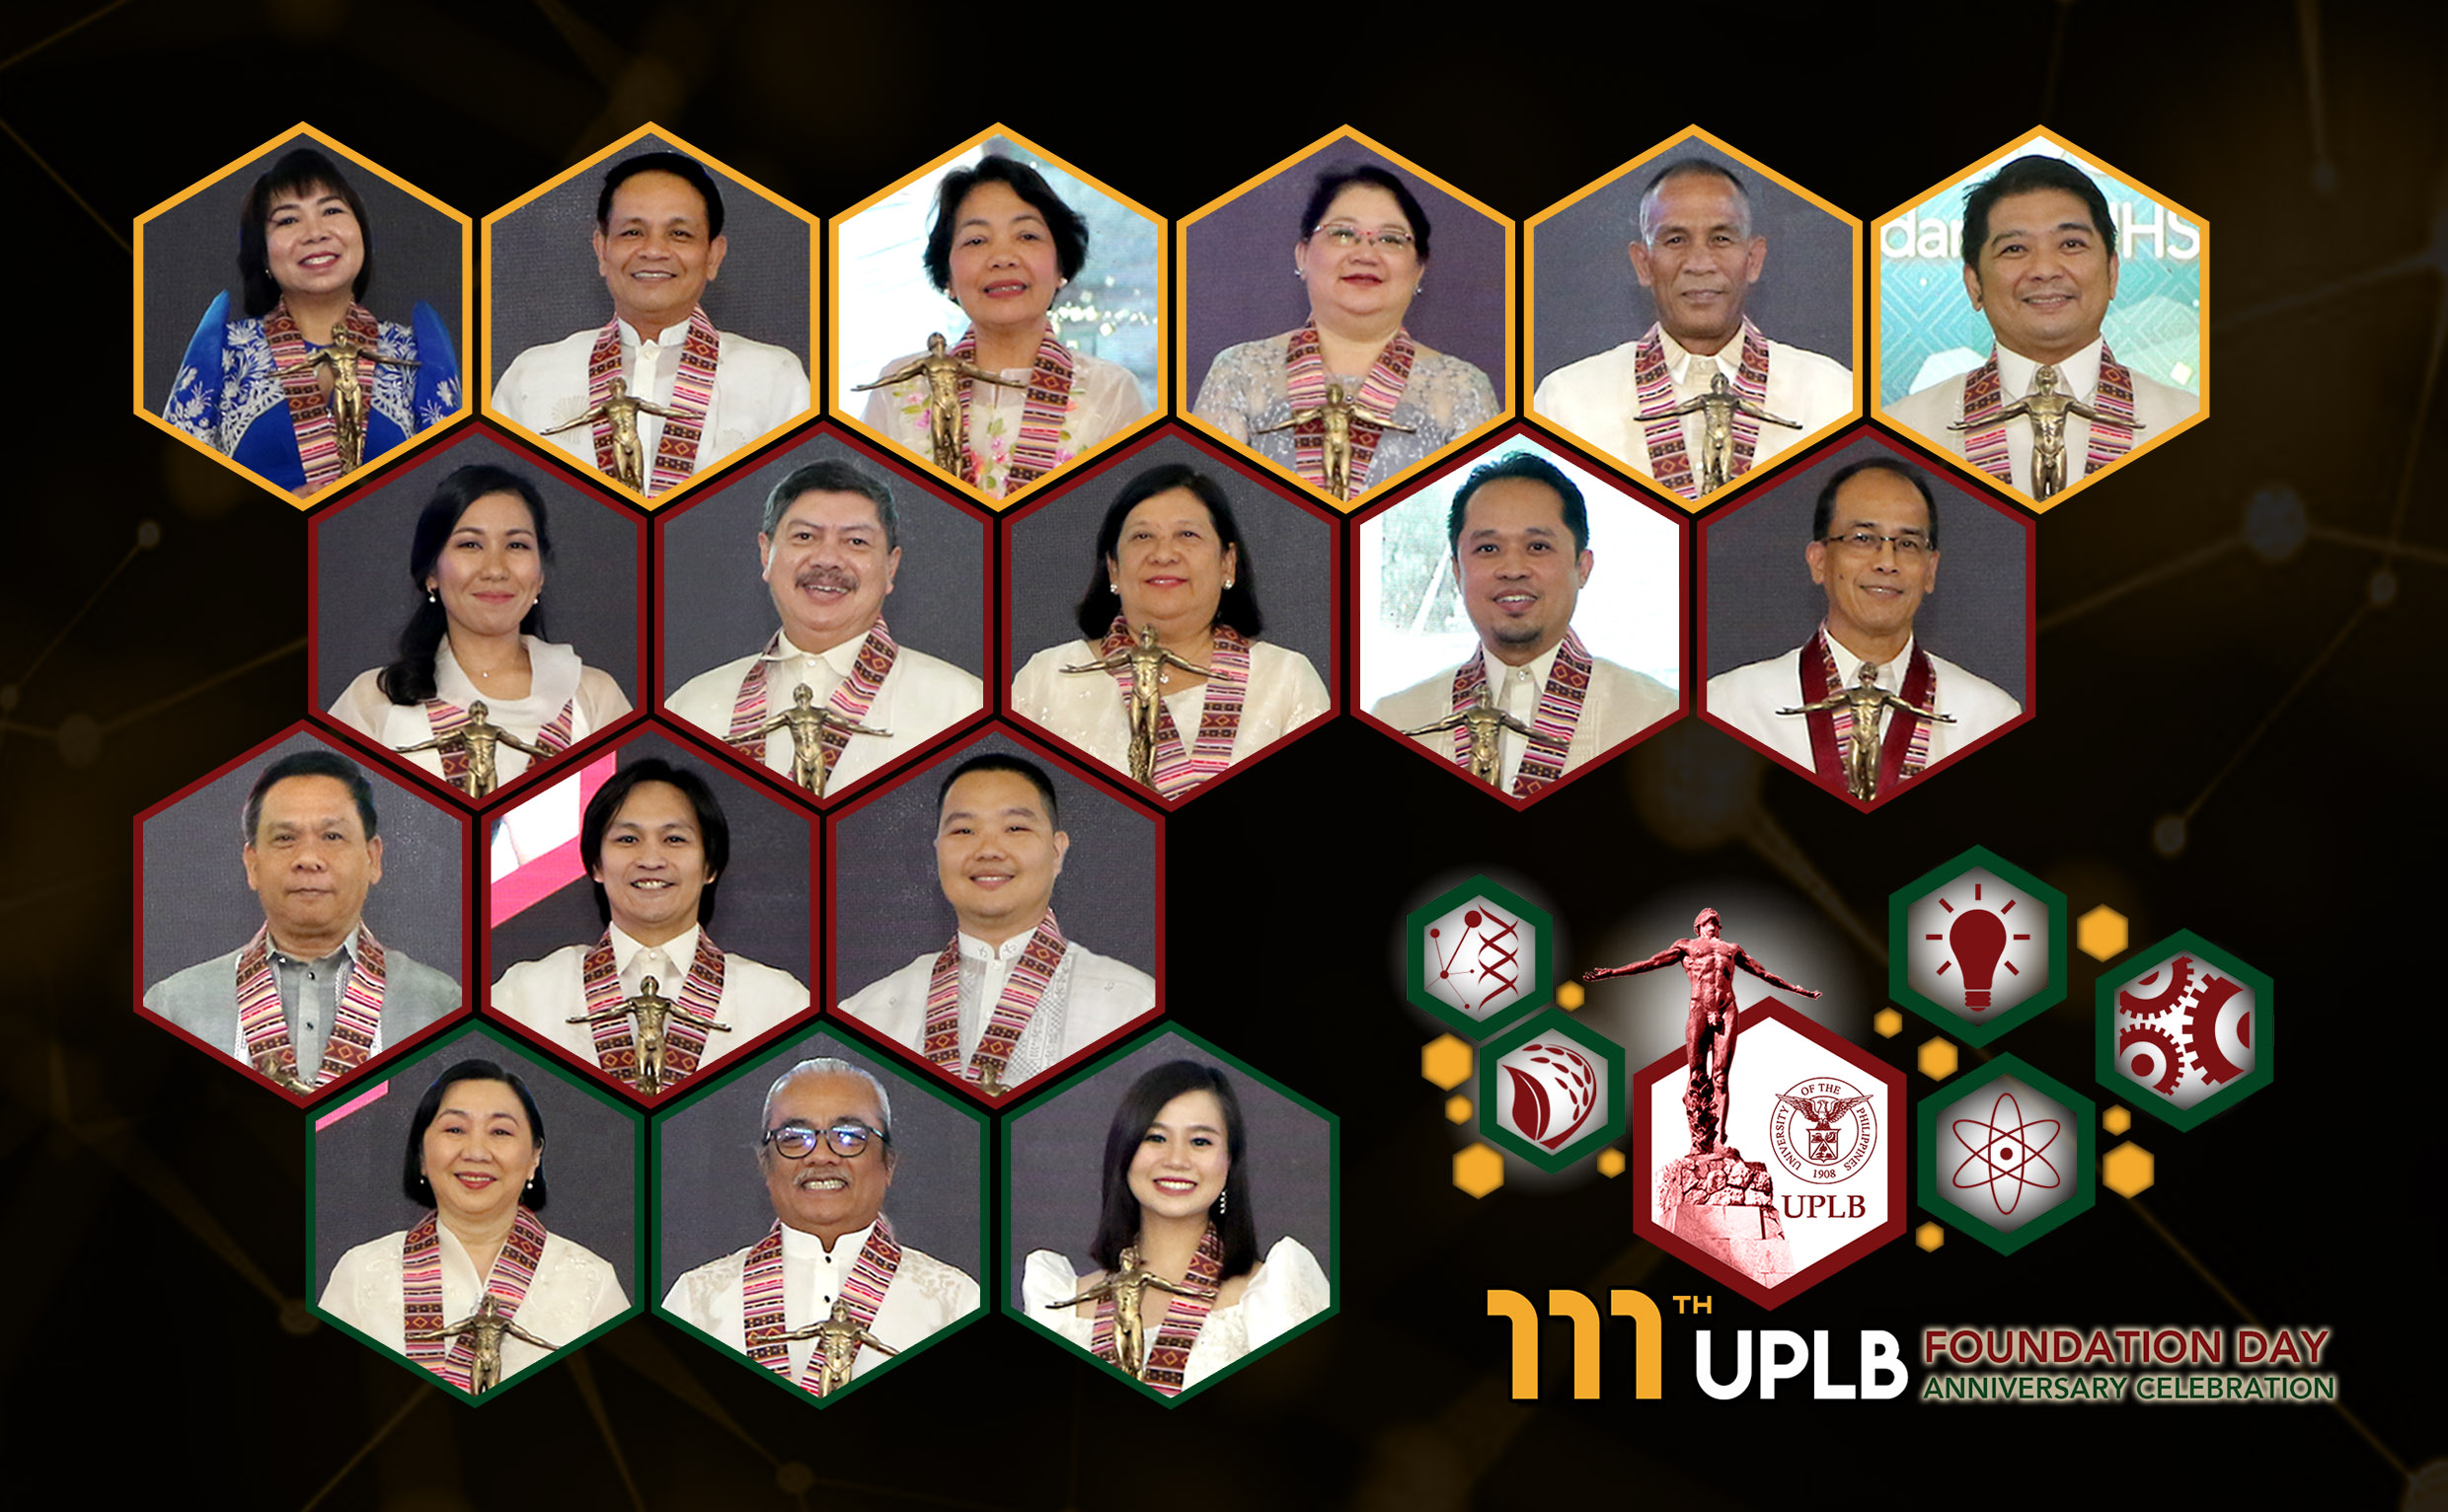 Outstanding personnel feted at 2020 UPLB Foundation Day